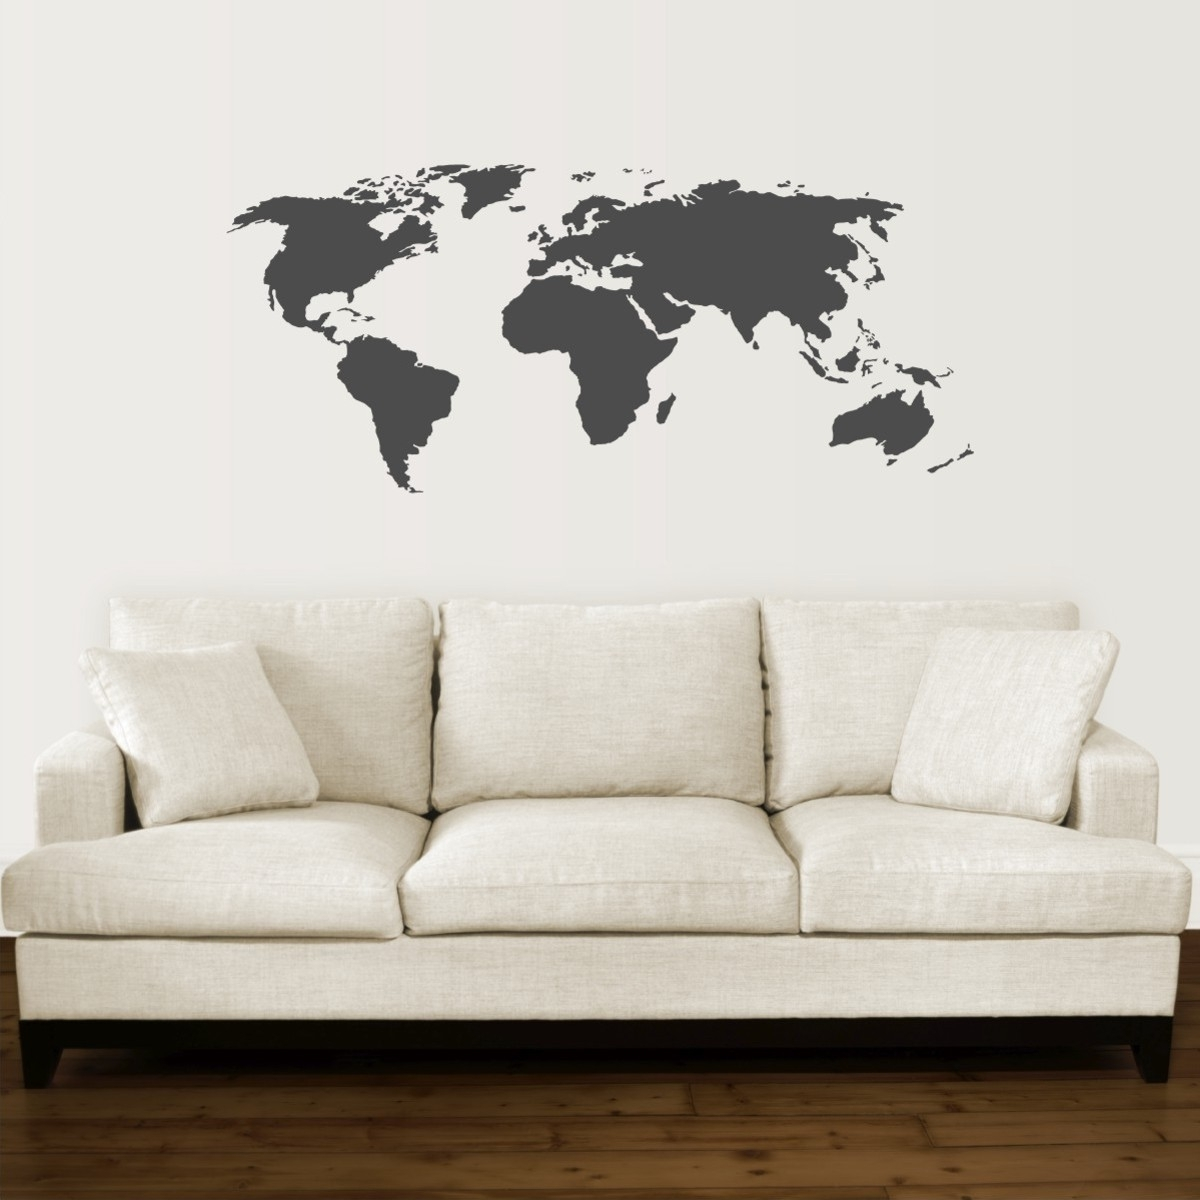 17 Cool Ideas For World Map Wall Art – Live Diy Ideas Within Current World Map For Wall Art (View 2 of 20)